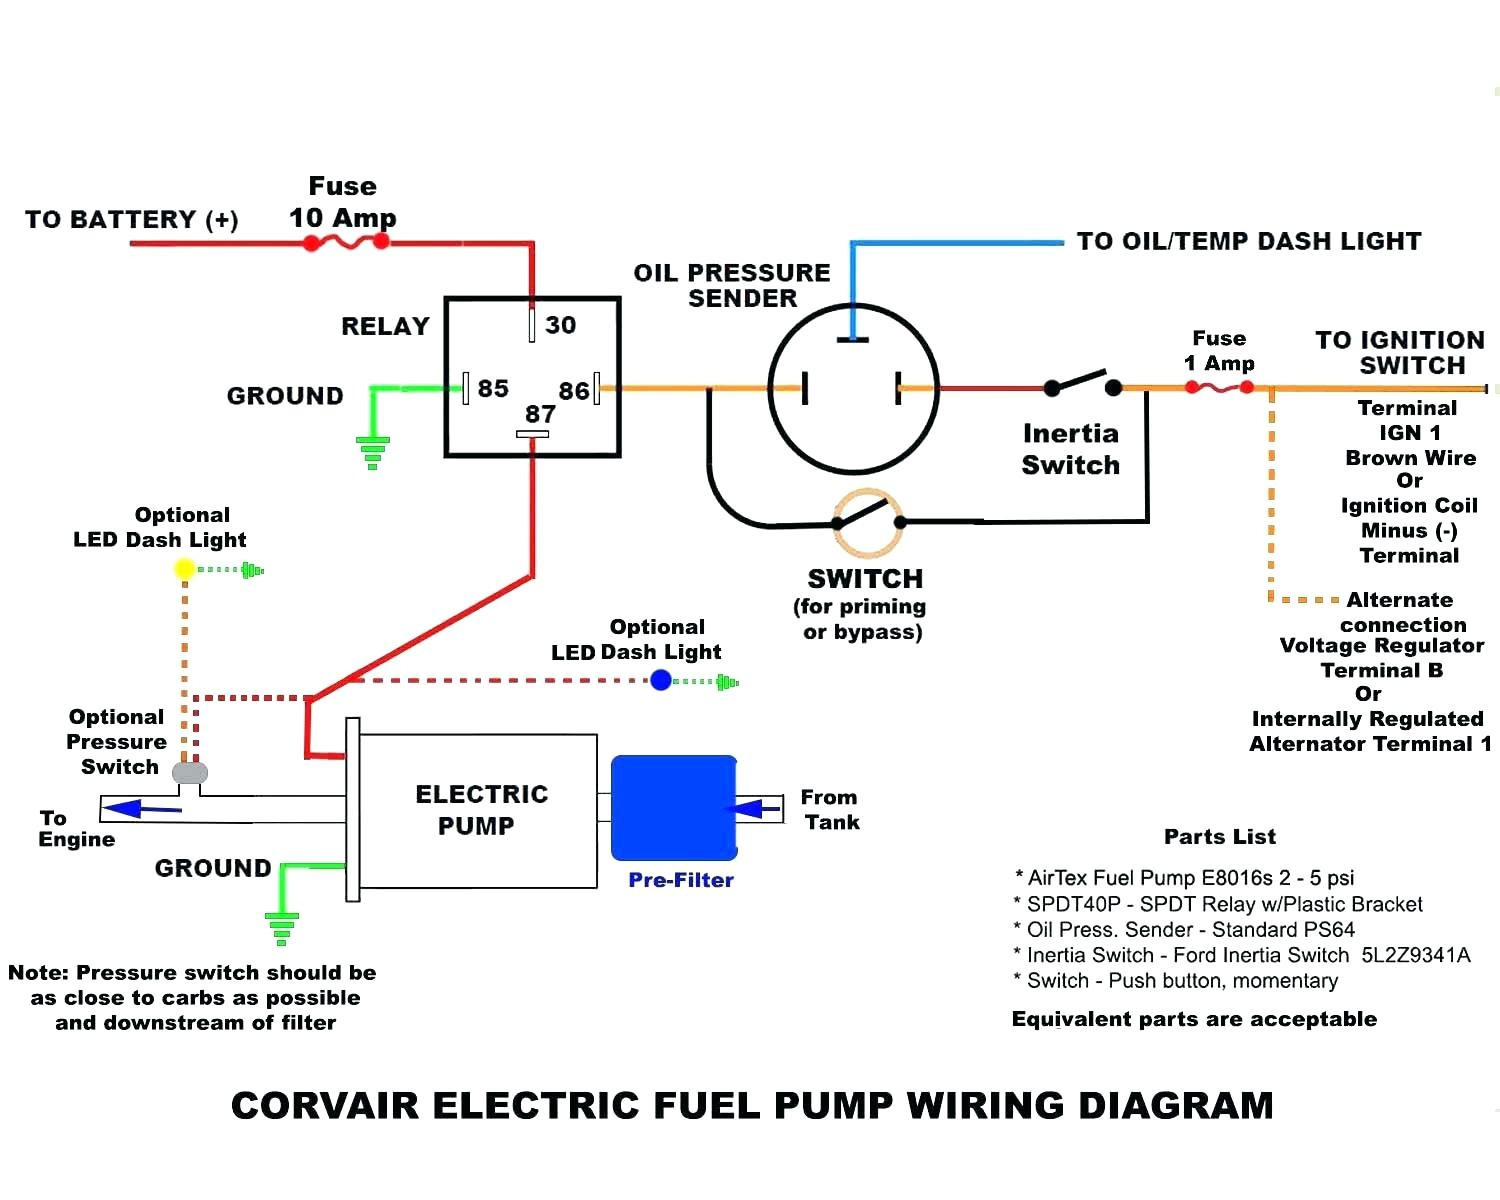 89 S13 Fuse Box Wiring Library Headlight Diagram Electric Fuel Pump Image 240sx History 96